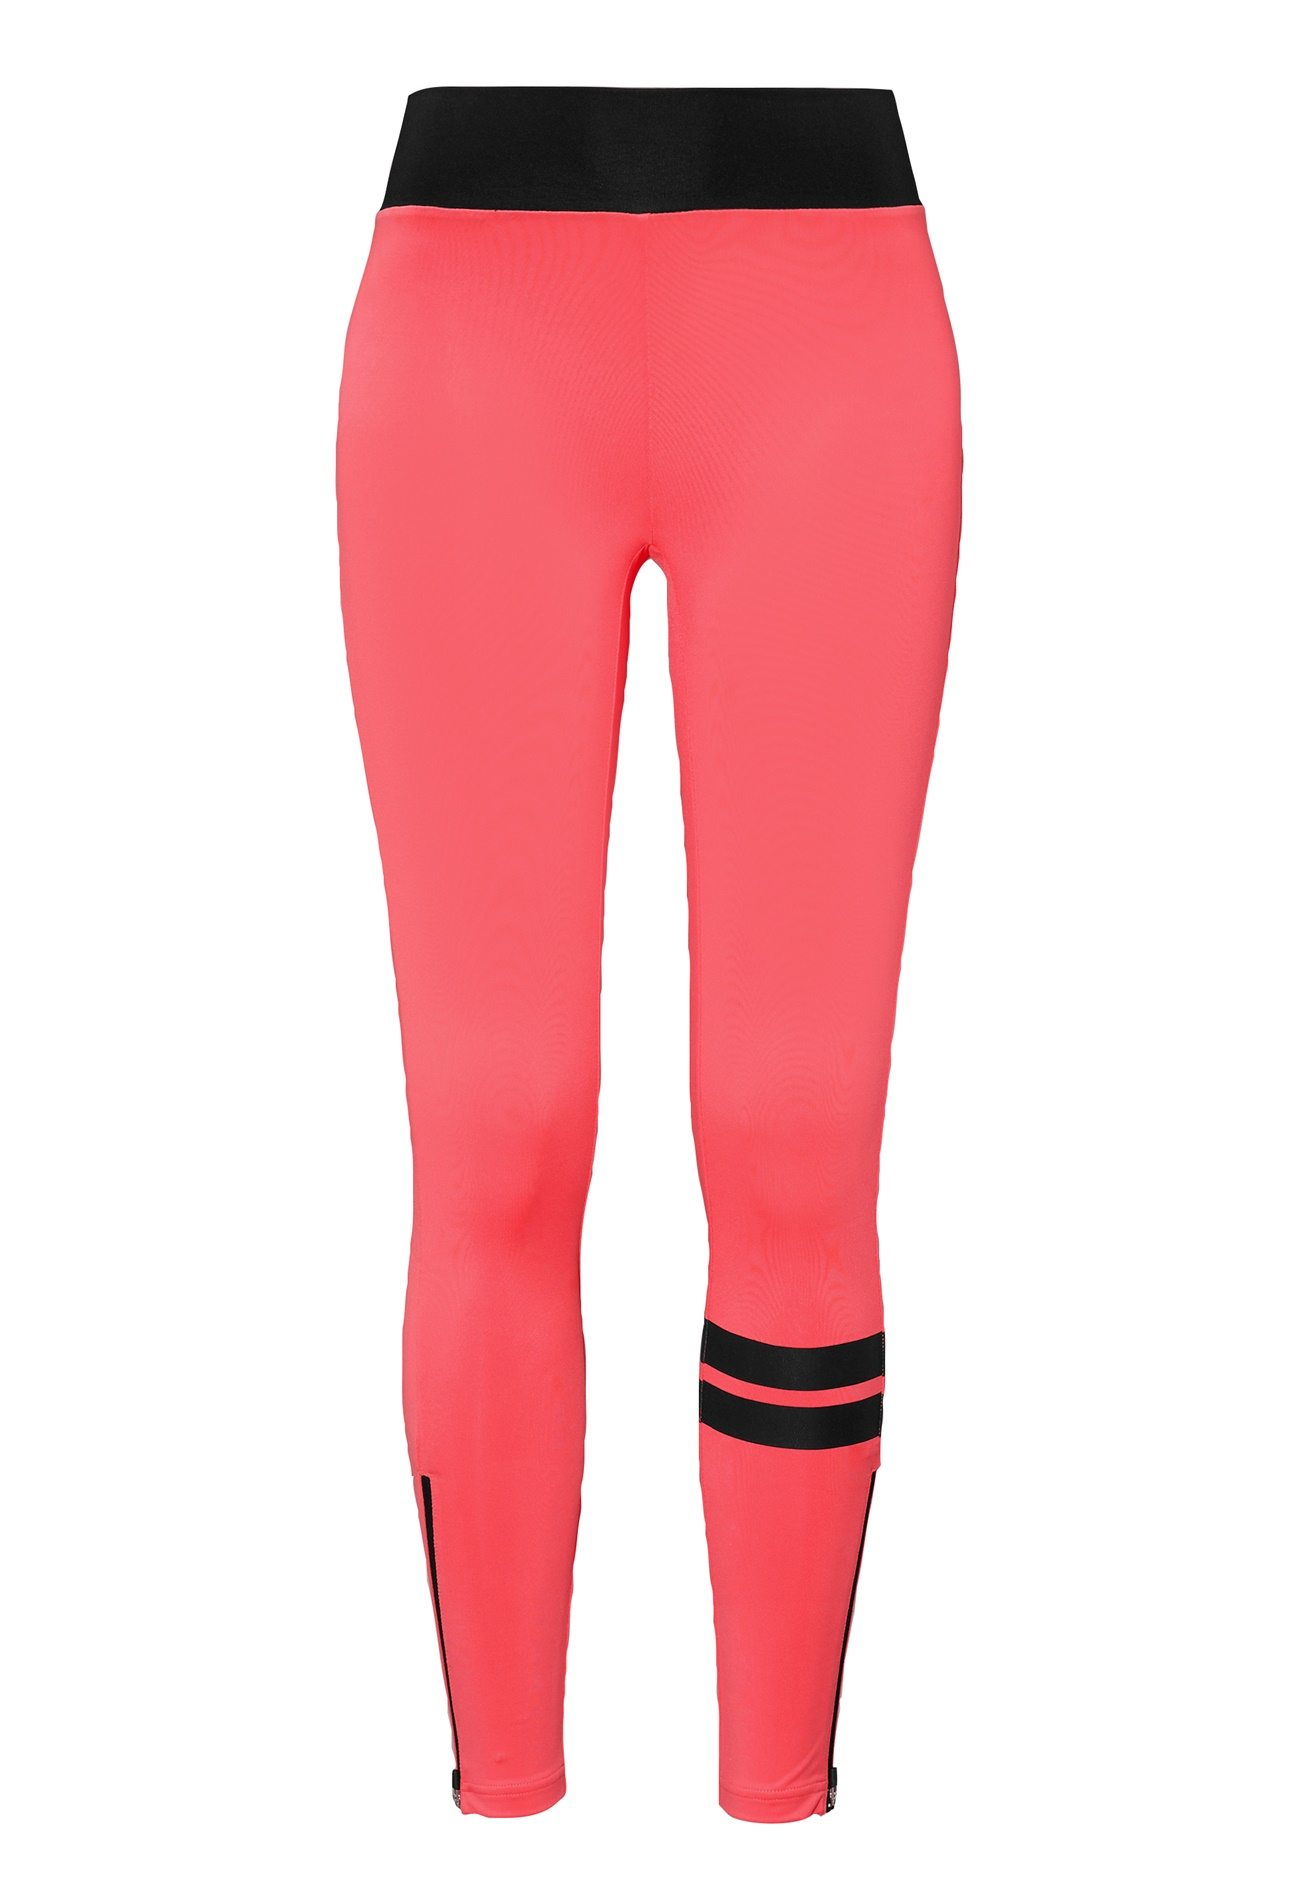 Find great deals on eBay for pink striped tights. Shop with confidence.